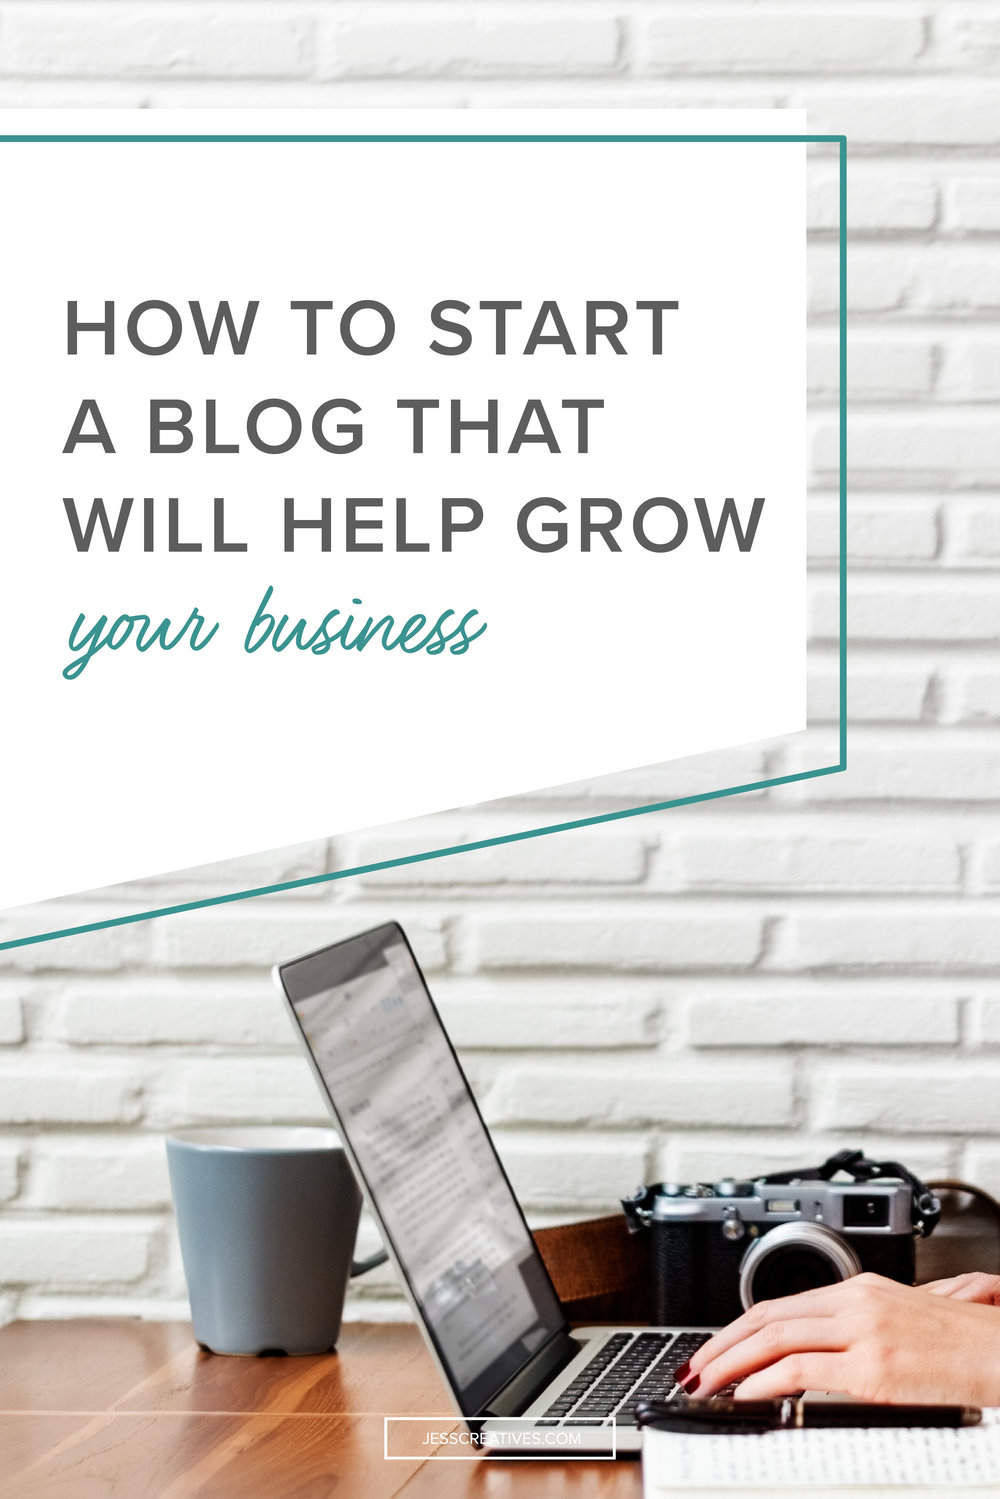 """Whether you're just starting a blog for the very first time, or you've decided to get serious about your current blog, there are a few tried-and-true """"rules for success"""" when it comes to blogging for business as a creative entrepreneur."""